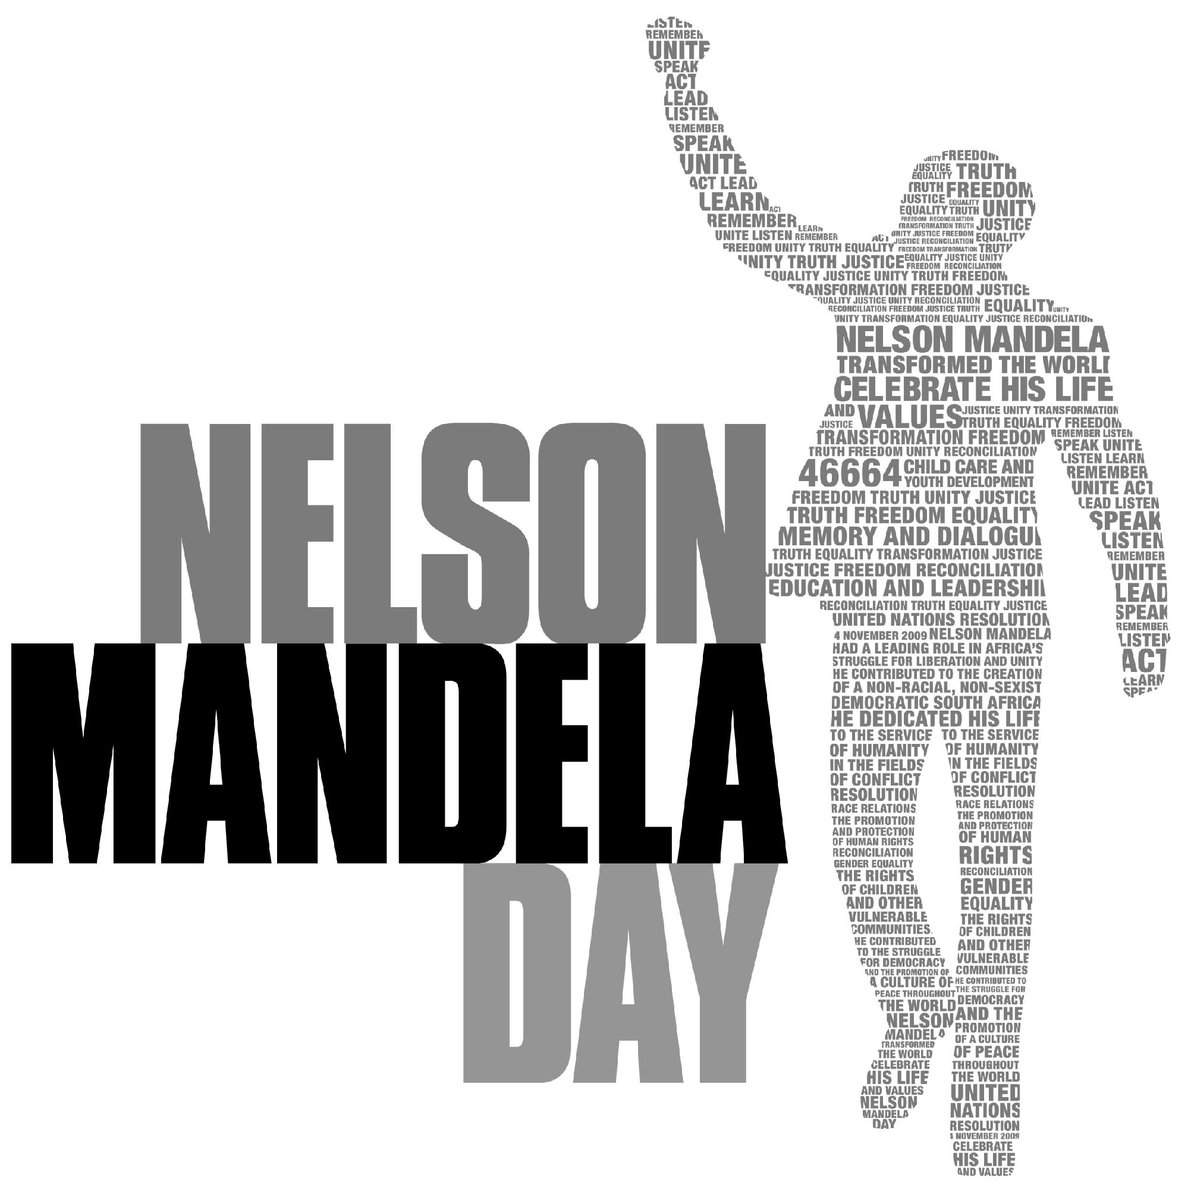 test Twitter Media - #NelsonMandelaDay  #EUIPO #Trademark number: 008957921 Nice Classification: 14, 16, 18, 20, 21, 25, 35, 36, 41 #Trademark status: Registered Owner name: The Trustees for the time being of the Nelson Mandela Foundation Trust https://t.co/pRfaewh6HZ